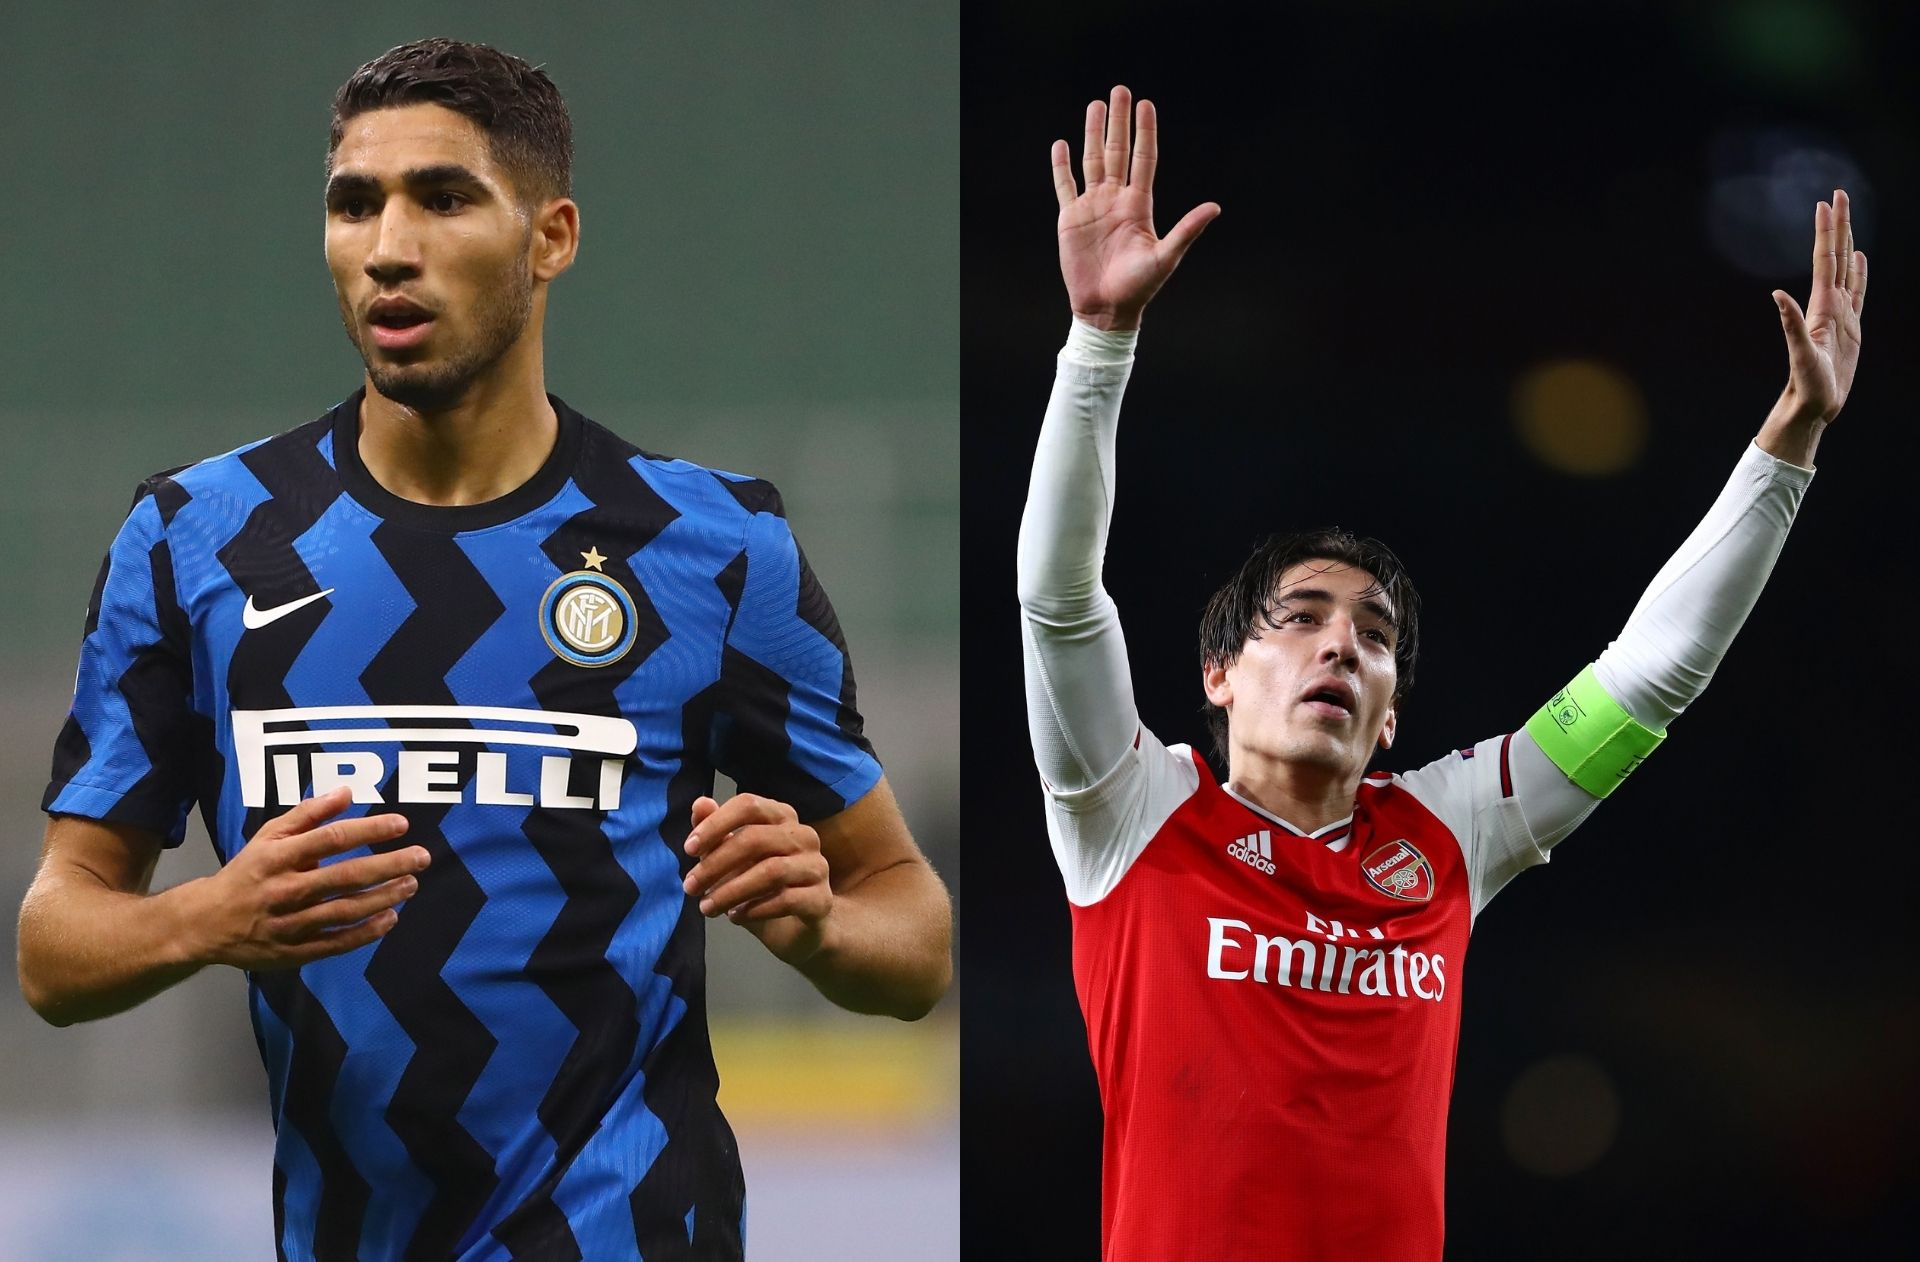 Achraf Hakimi of Inter Milan, Hector Bellerin of Arsenal